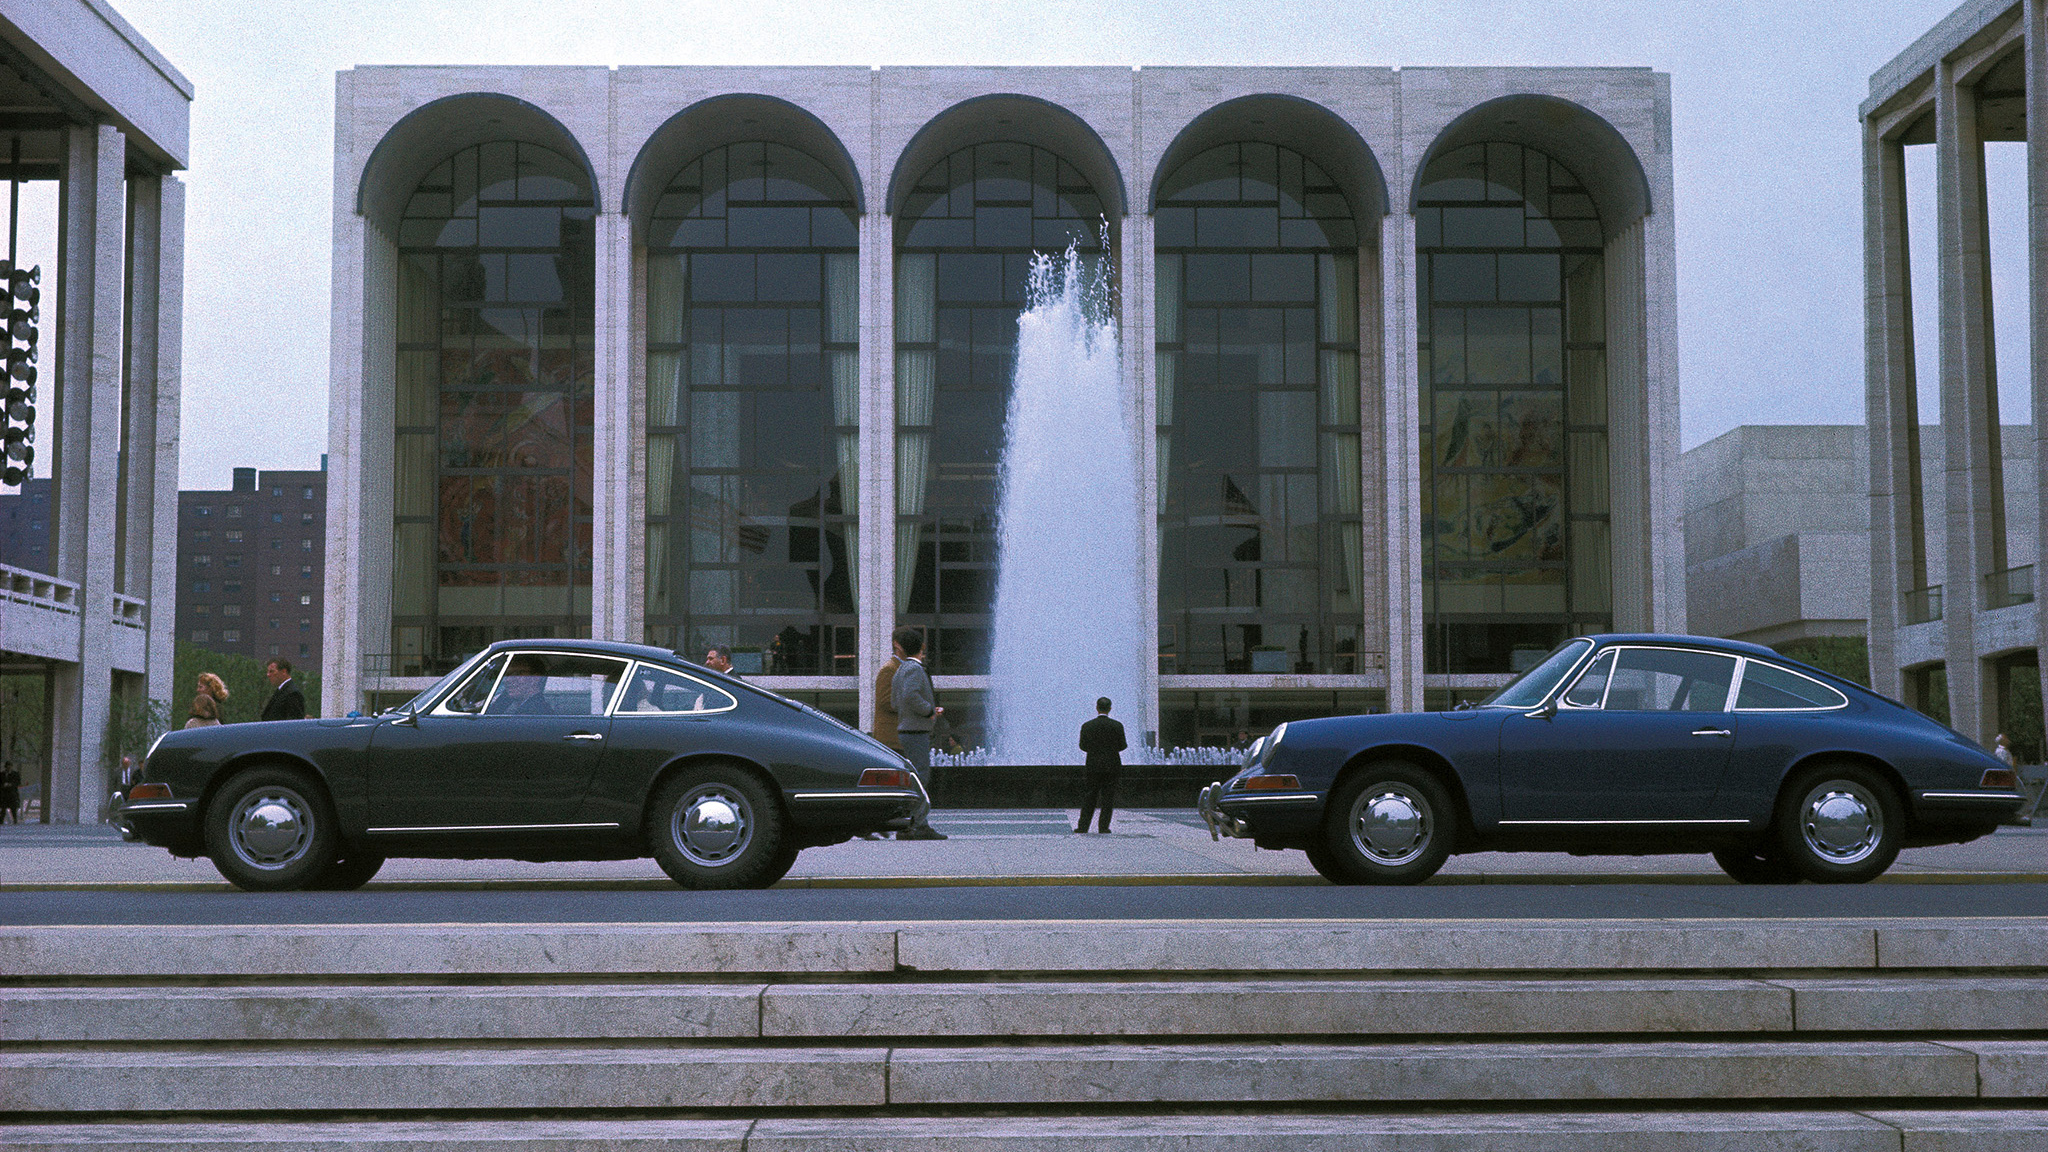 911 2.0 Coupés, New York City, Metropolitan Opera, Porsche AG